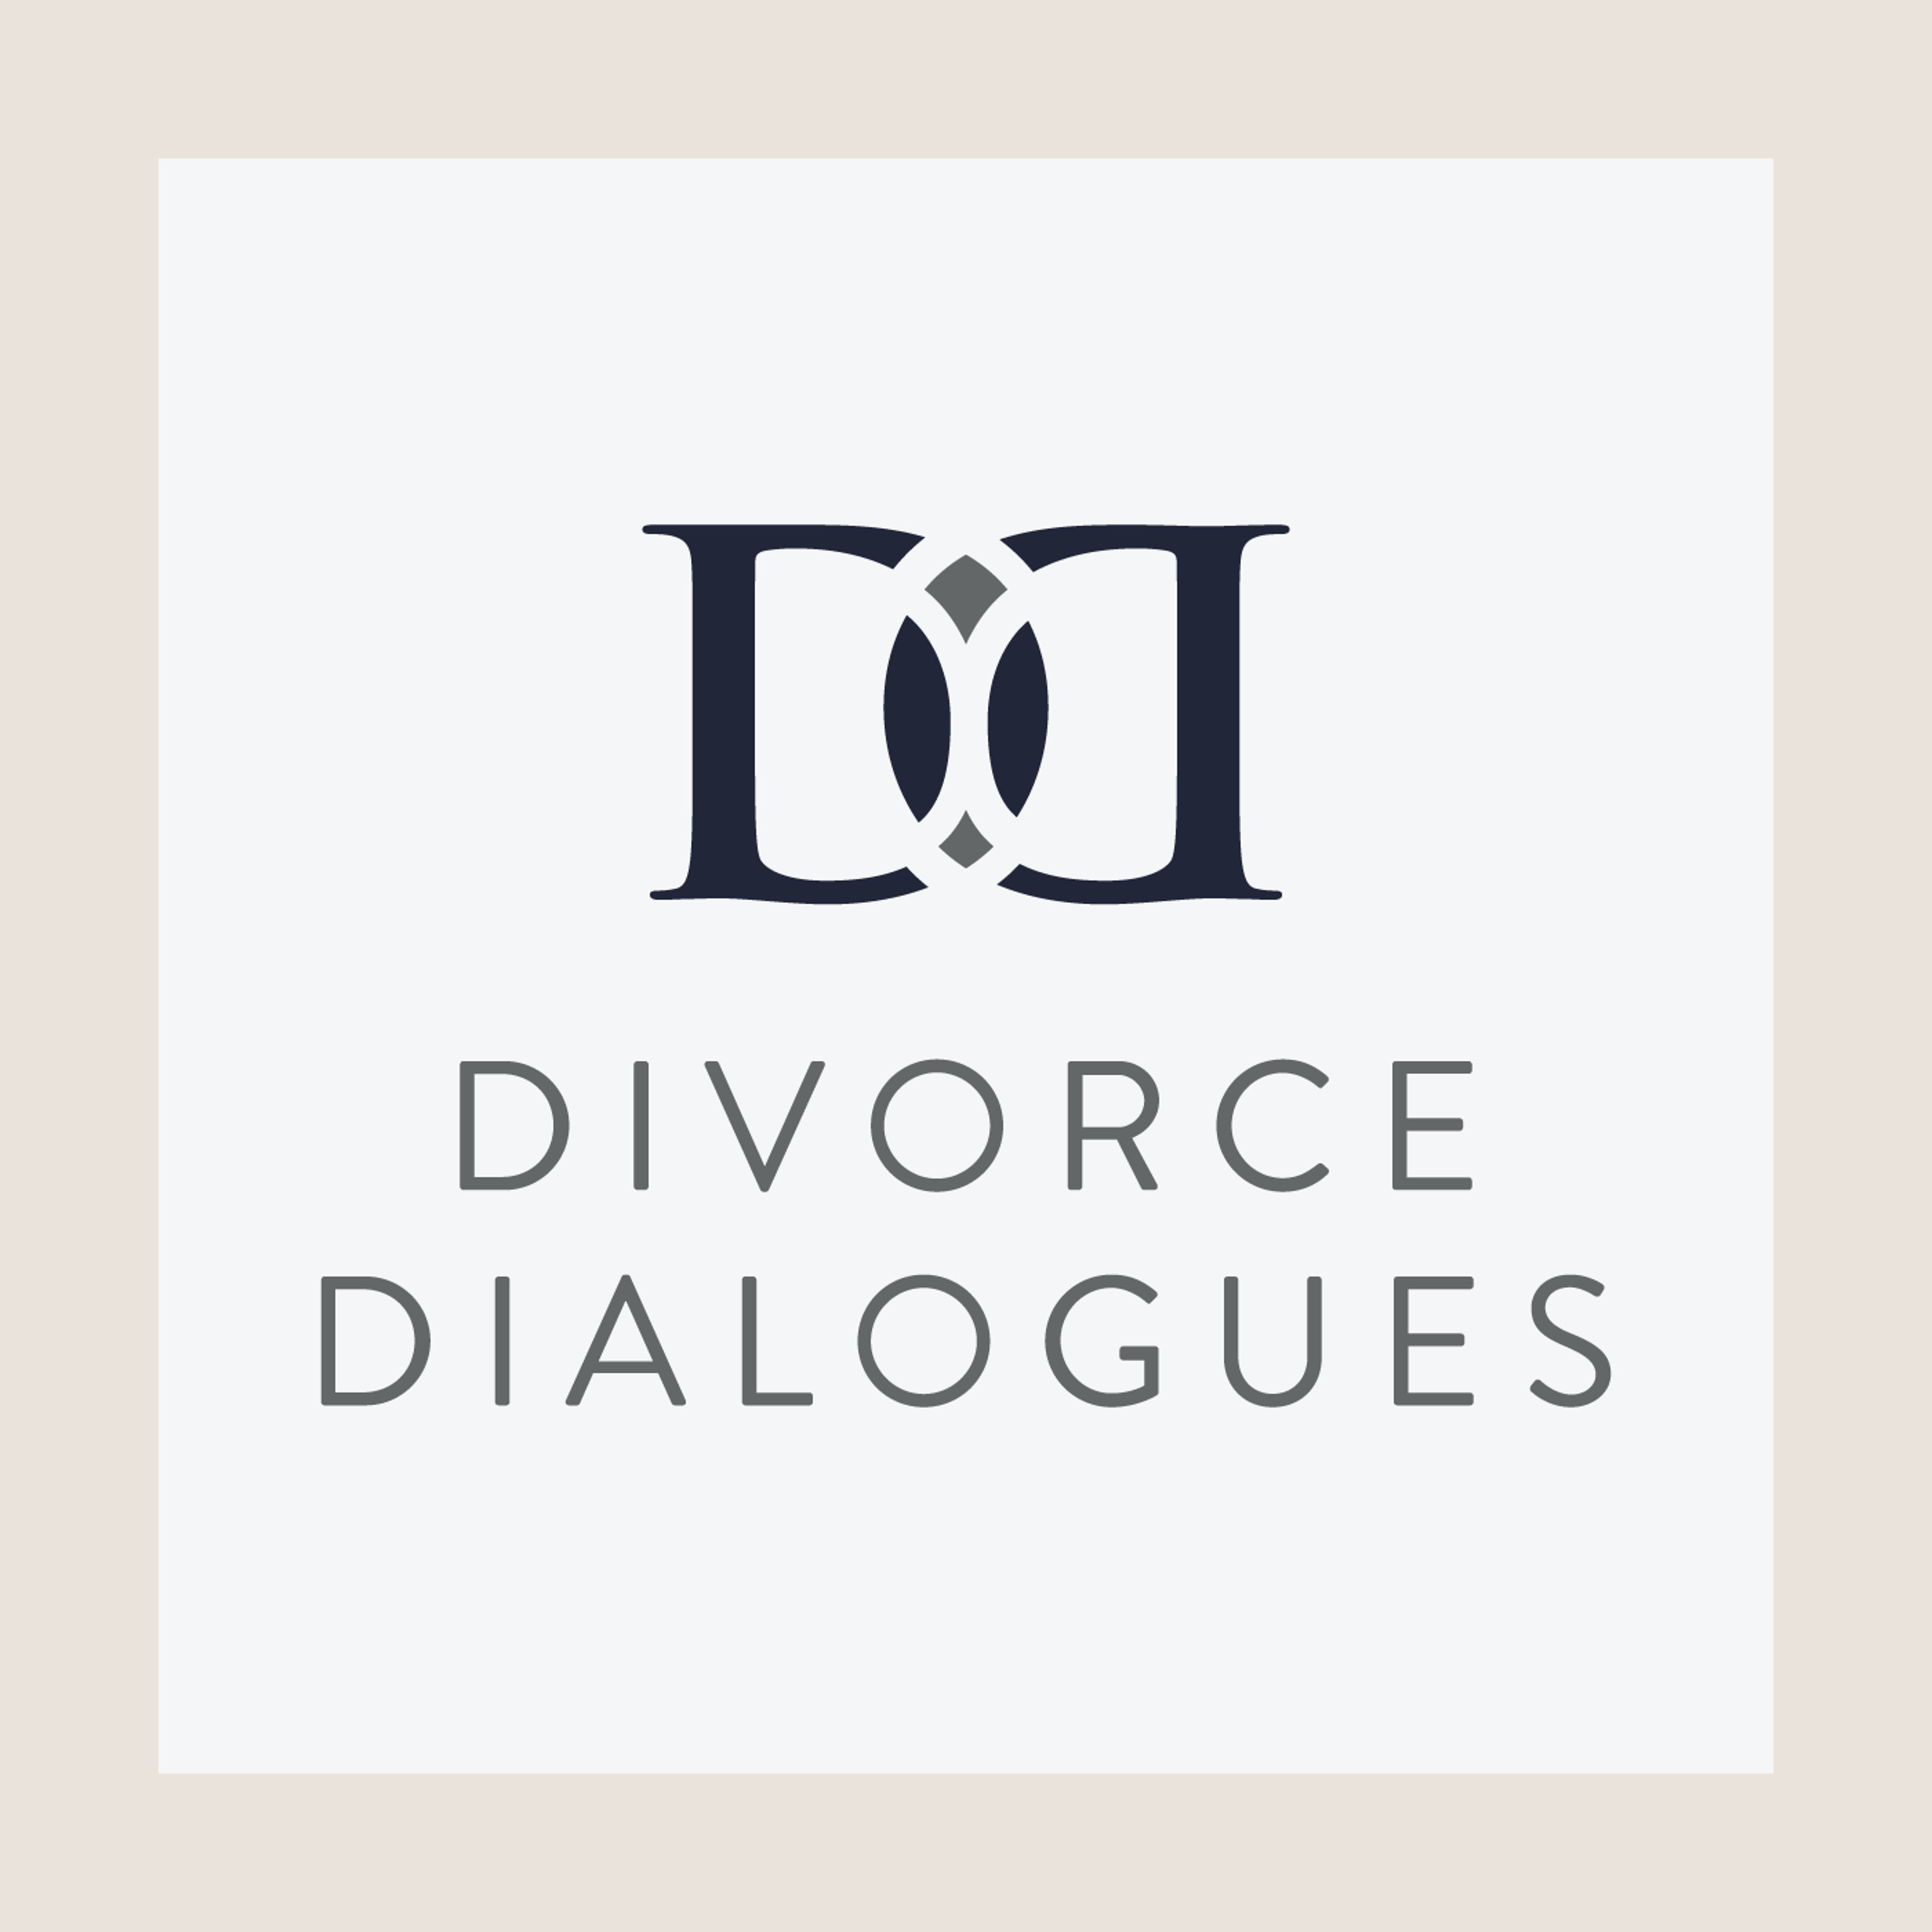 Divorce Dialogues - The Benefits of Coaching for Divorcing Dads with Richard Heller